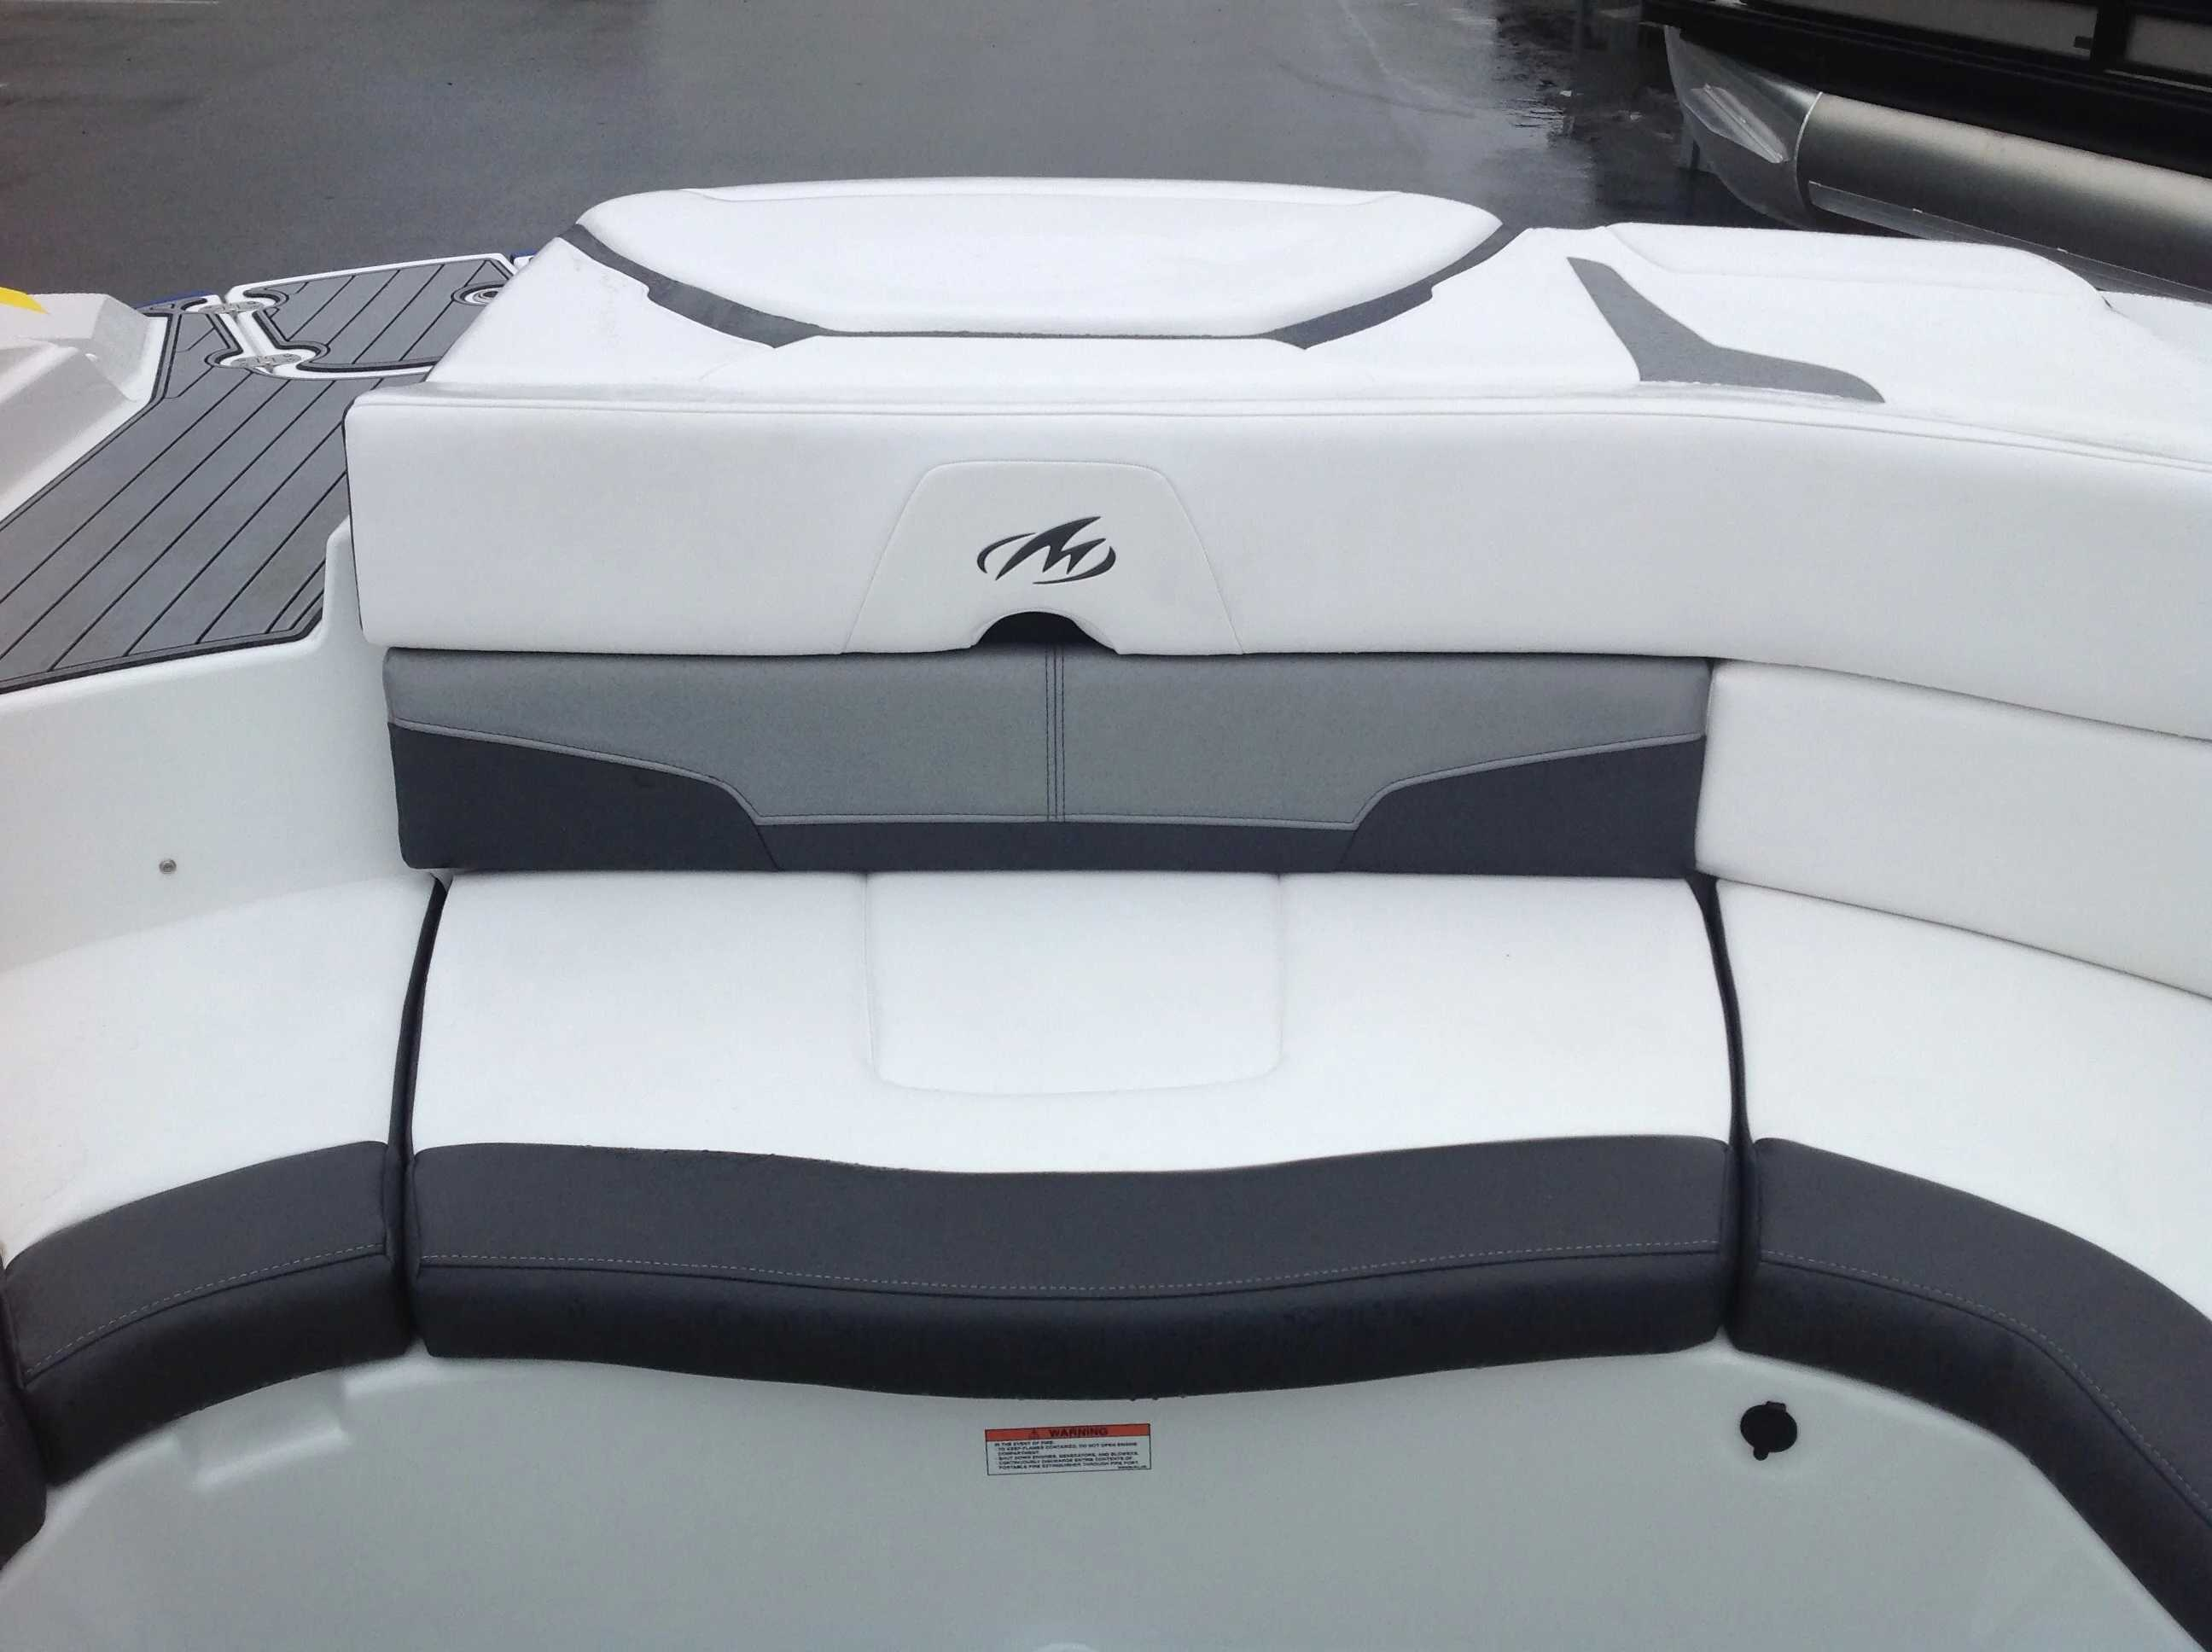 2021 Monterey boat for sale, model of the boat is 224FS & Image # 9 of 10